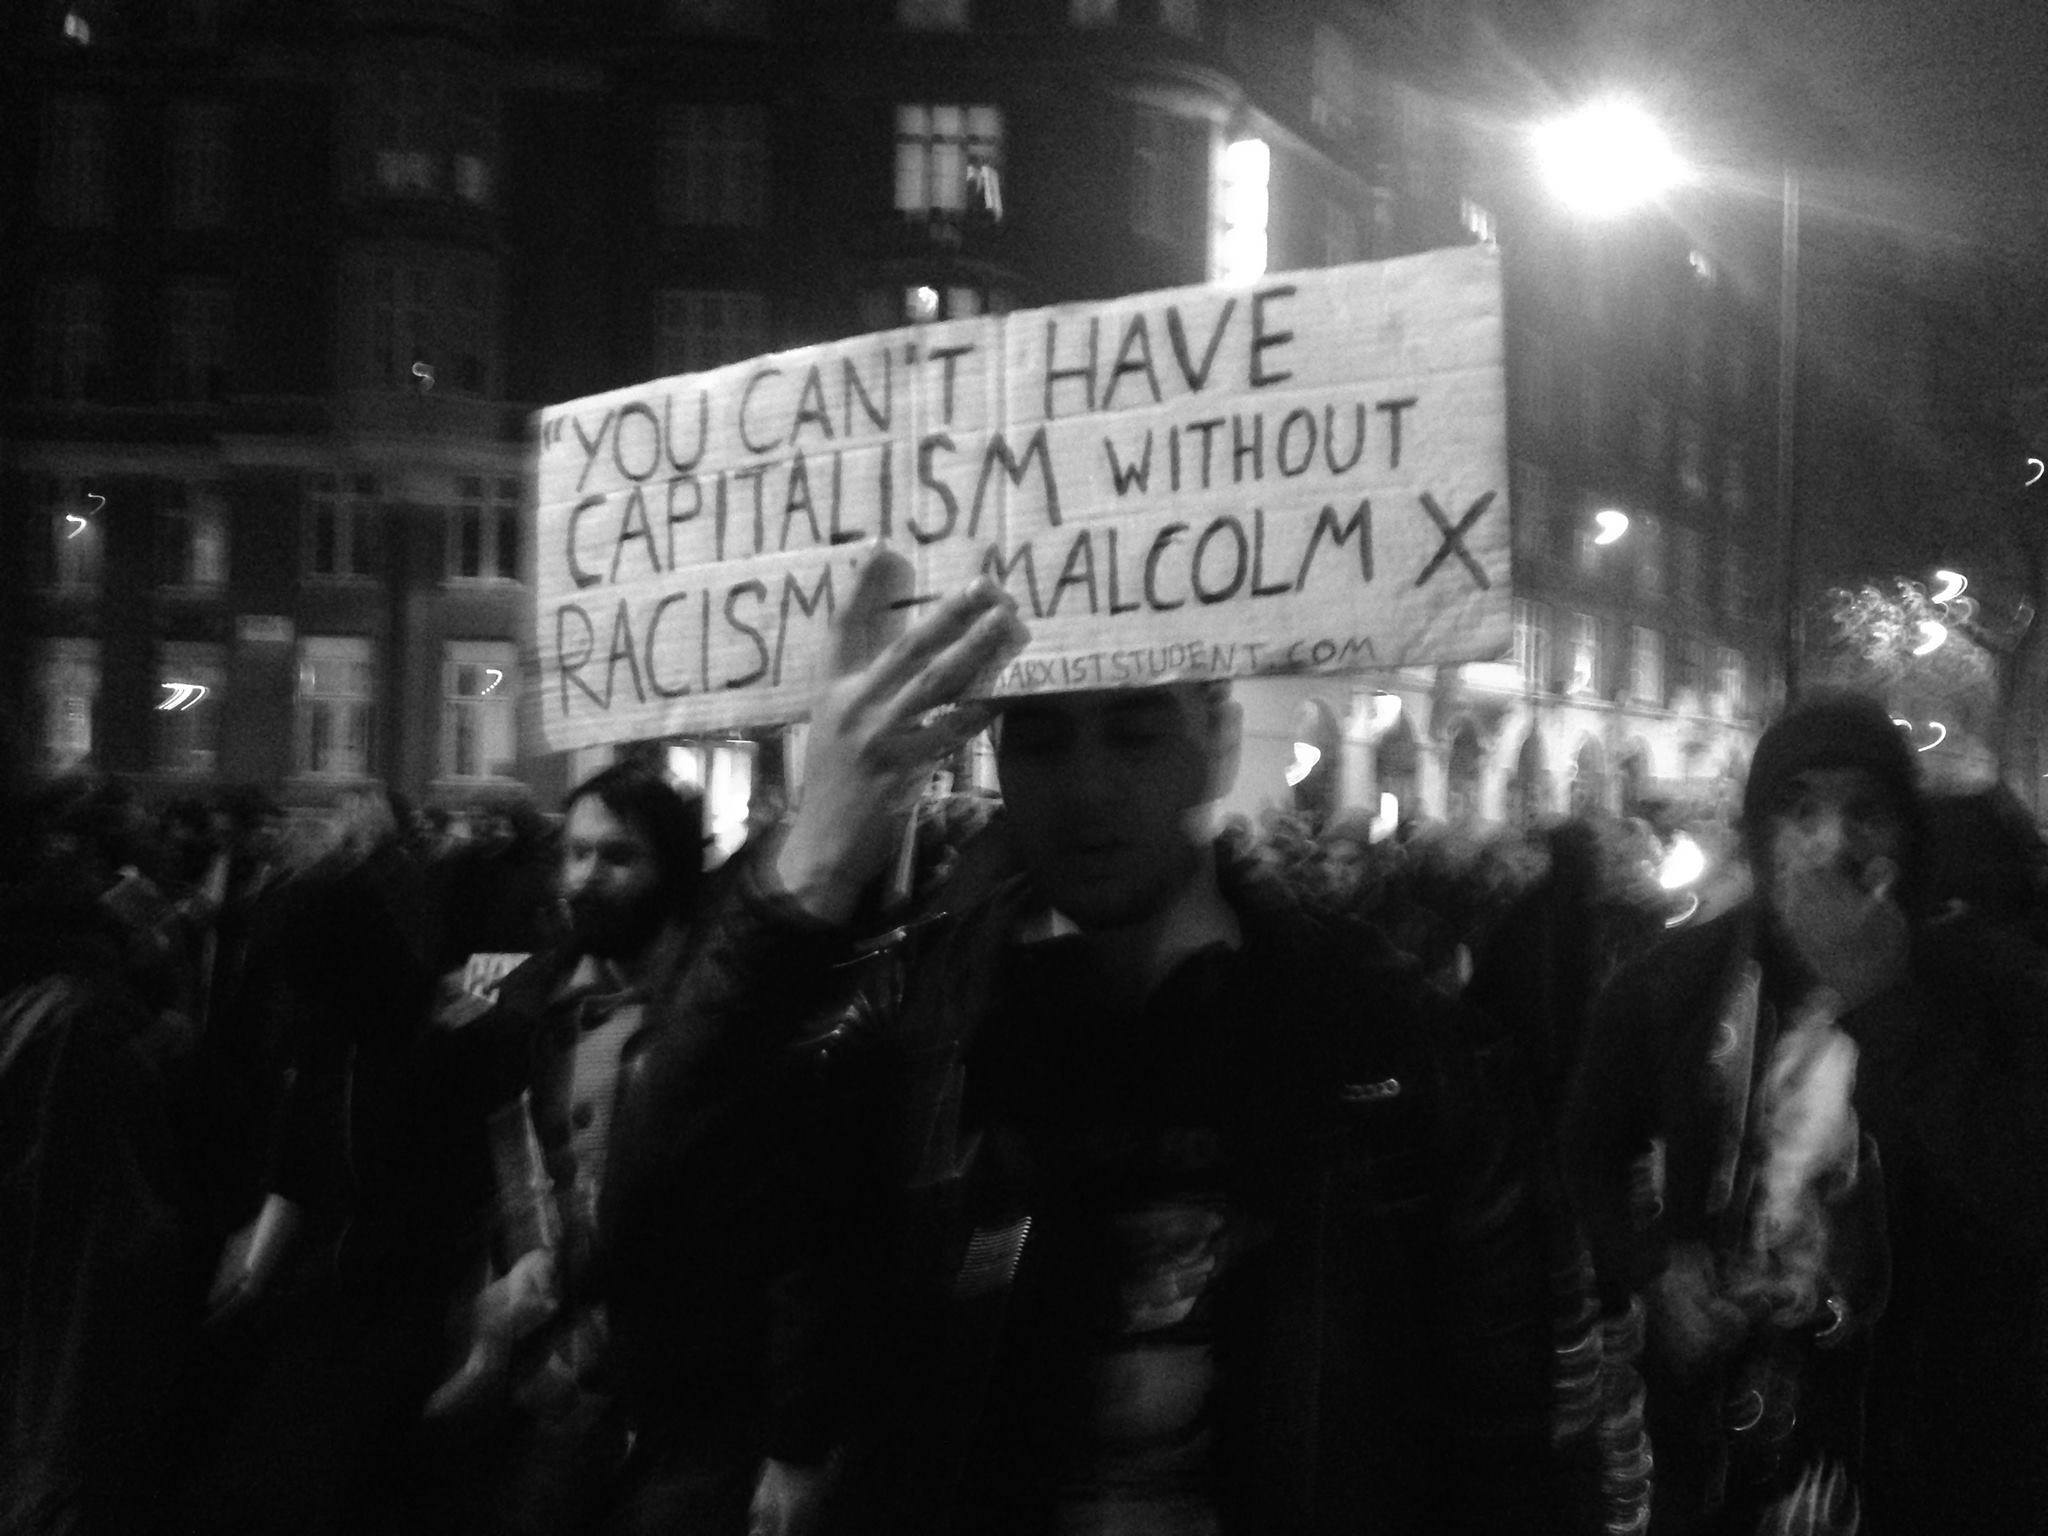 Myths of Marxism: can you have capitalism without racism?